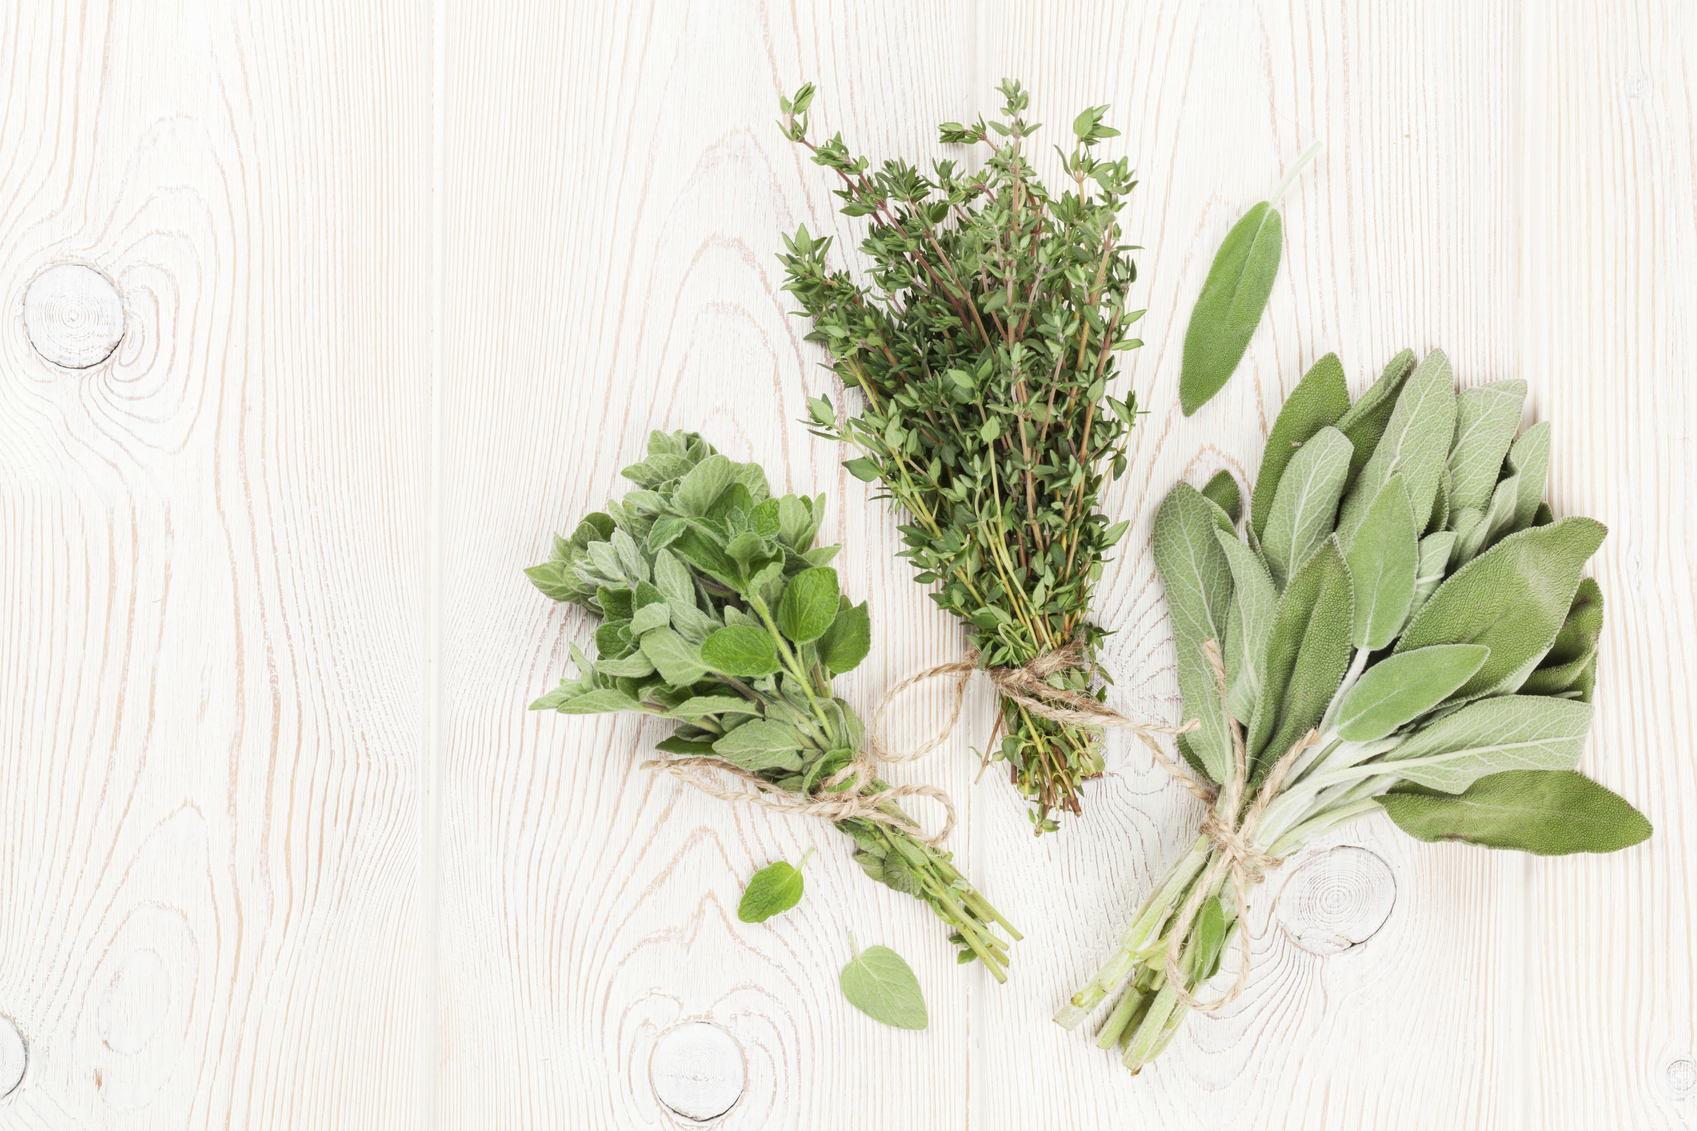 10 Culinary Herbs and Their Medicinal Uses - Nourished Kitchen